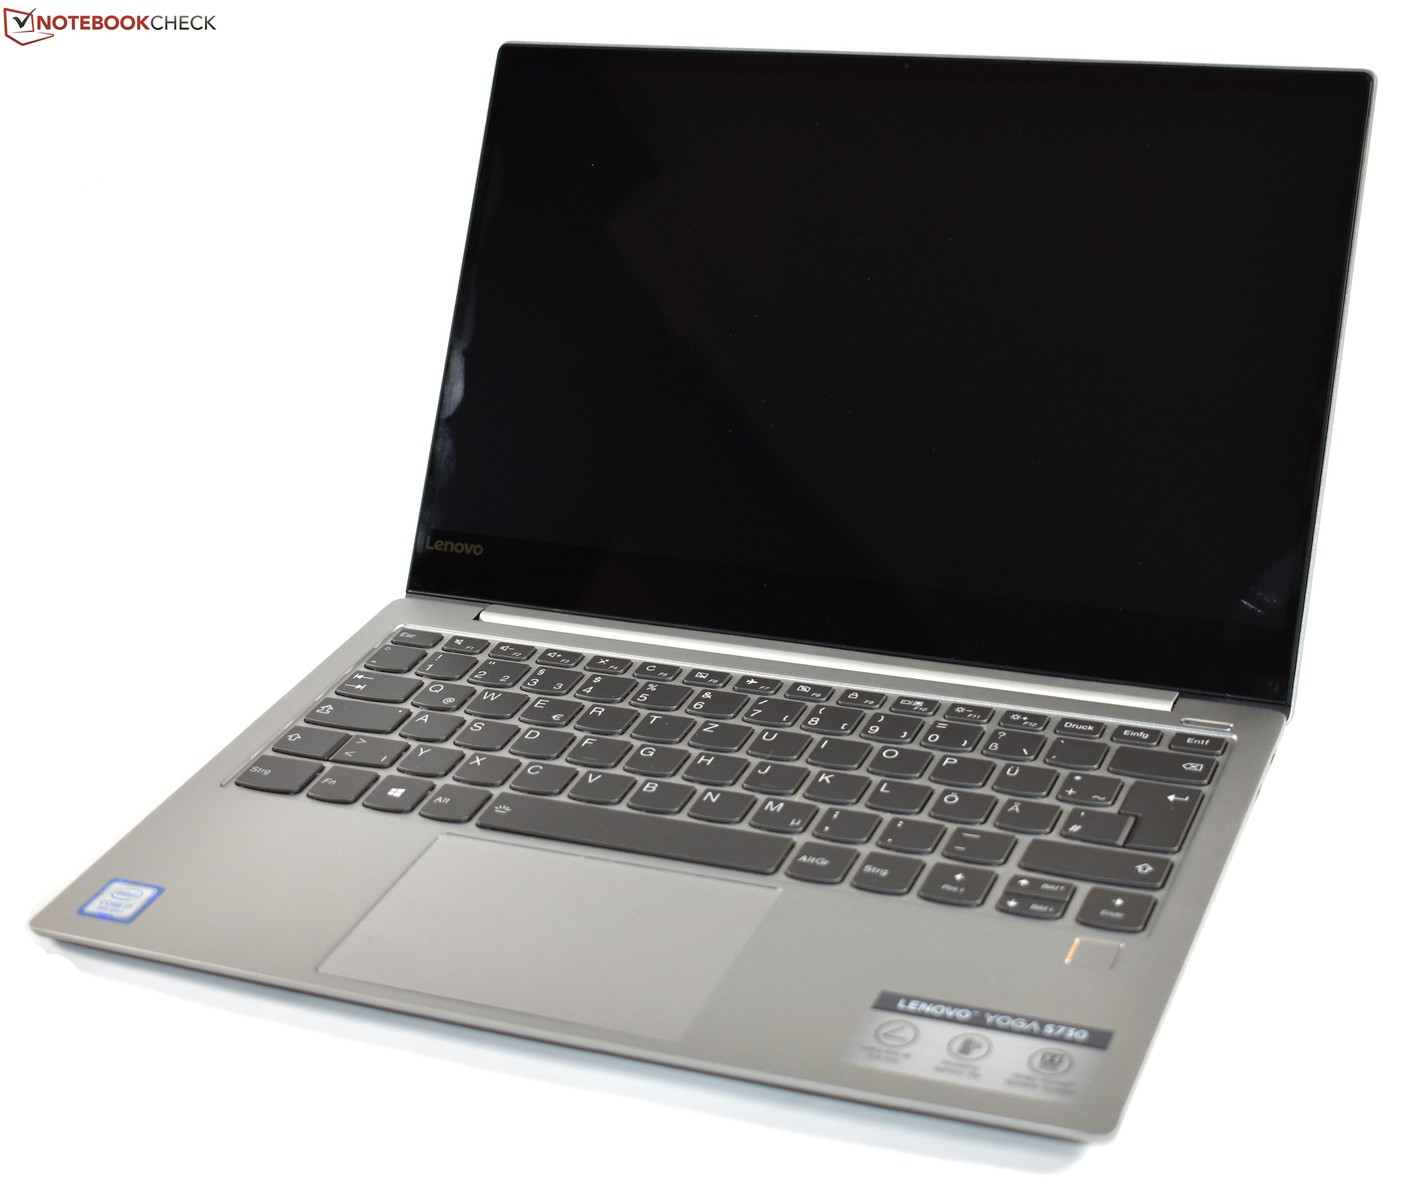 Lenovo Yoga S730-13IWL (FHD, Core i7-8565U) Laptop Review